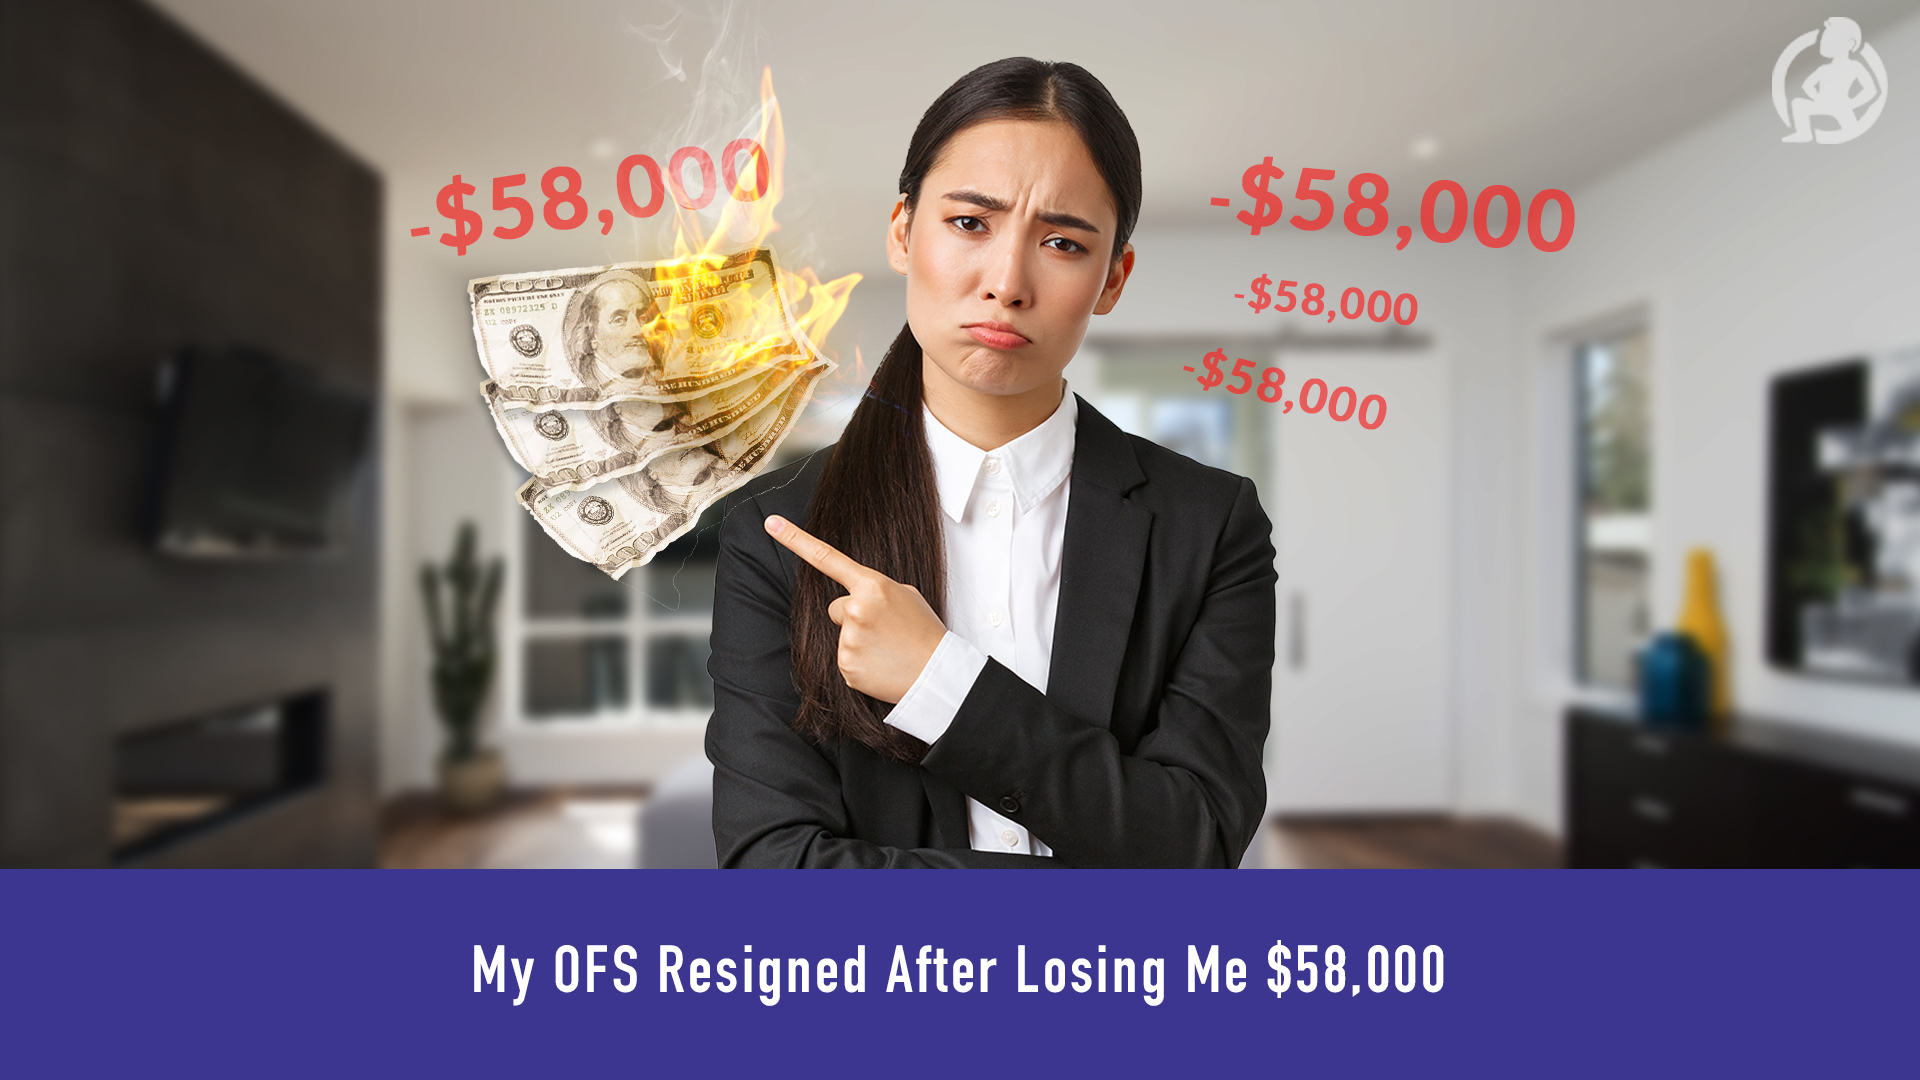 612 My OFS Resigned After Losing Me -58,000 Feature